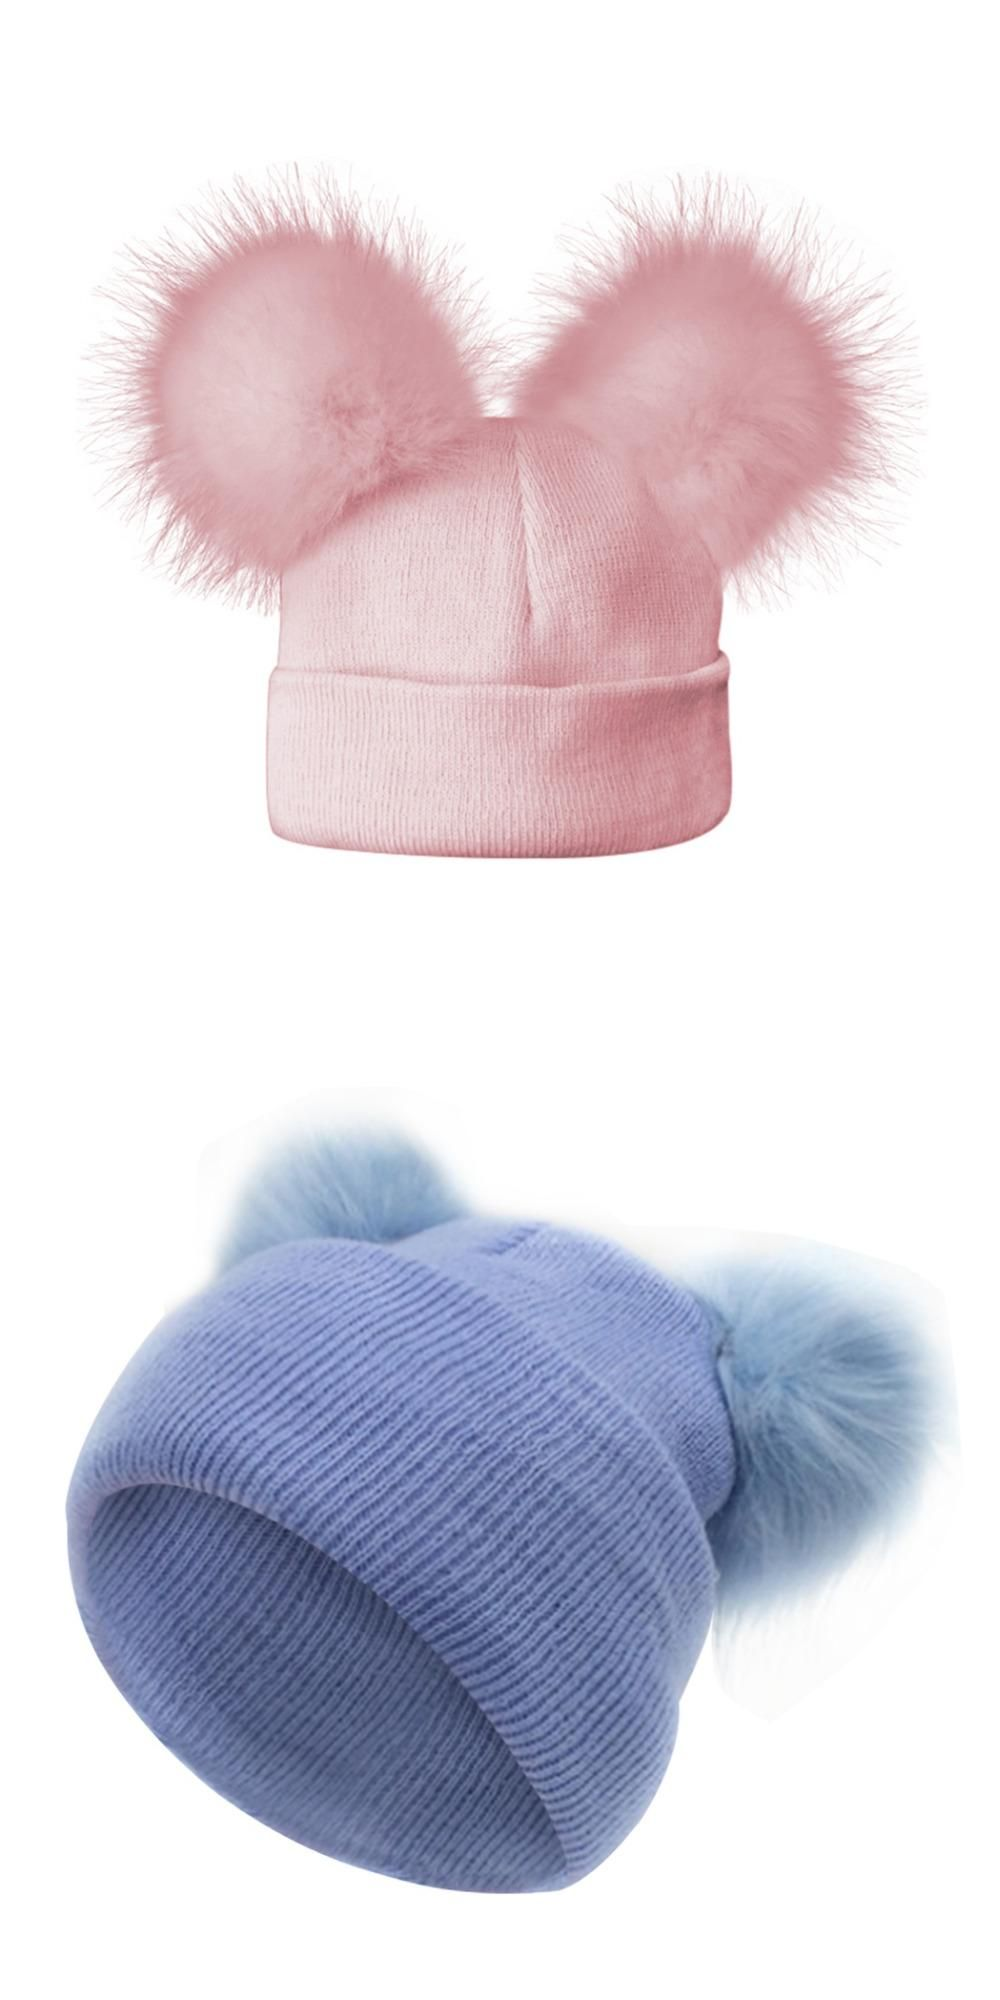 0b2f6a3e1 2017 Cute Baby Faux Raccoon Hat Double Fur Pom Pom Cotton Knitted ...